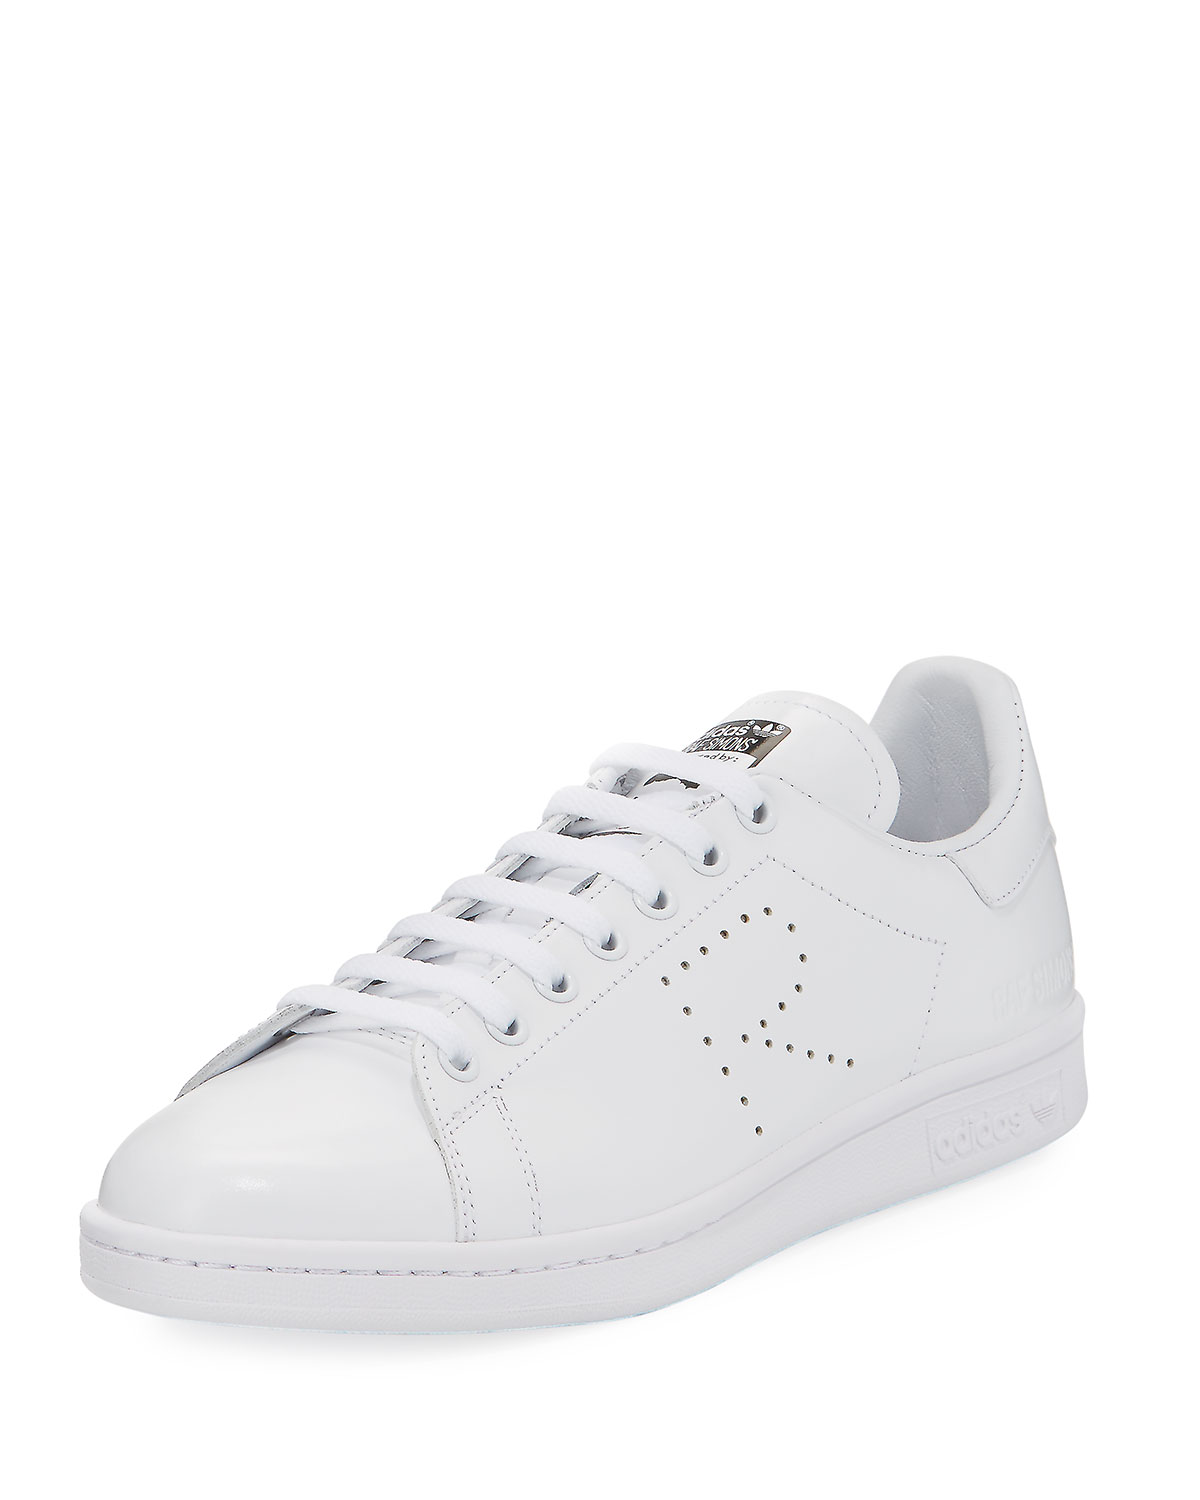 buy popular bf3d4 6fd29 adidas by Raf SimonsMen s Stan Smith Leather Low-Top Sneaker, White